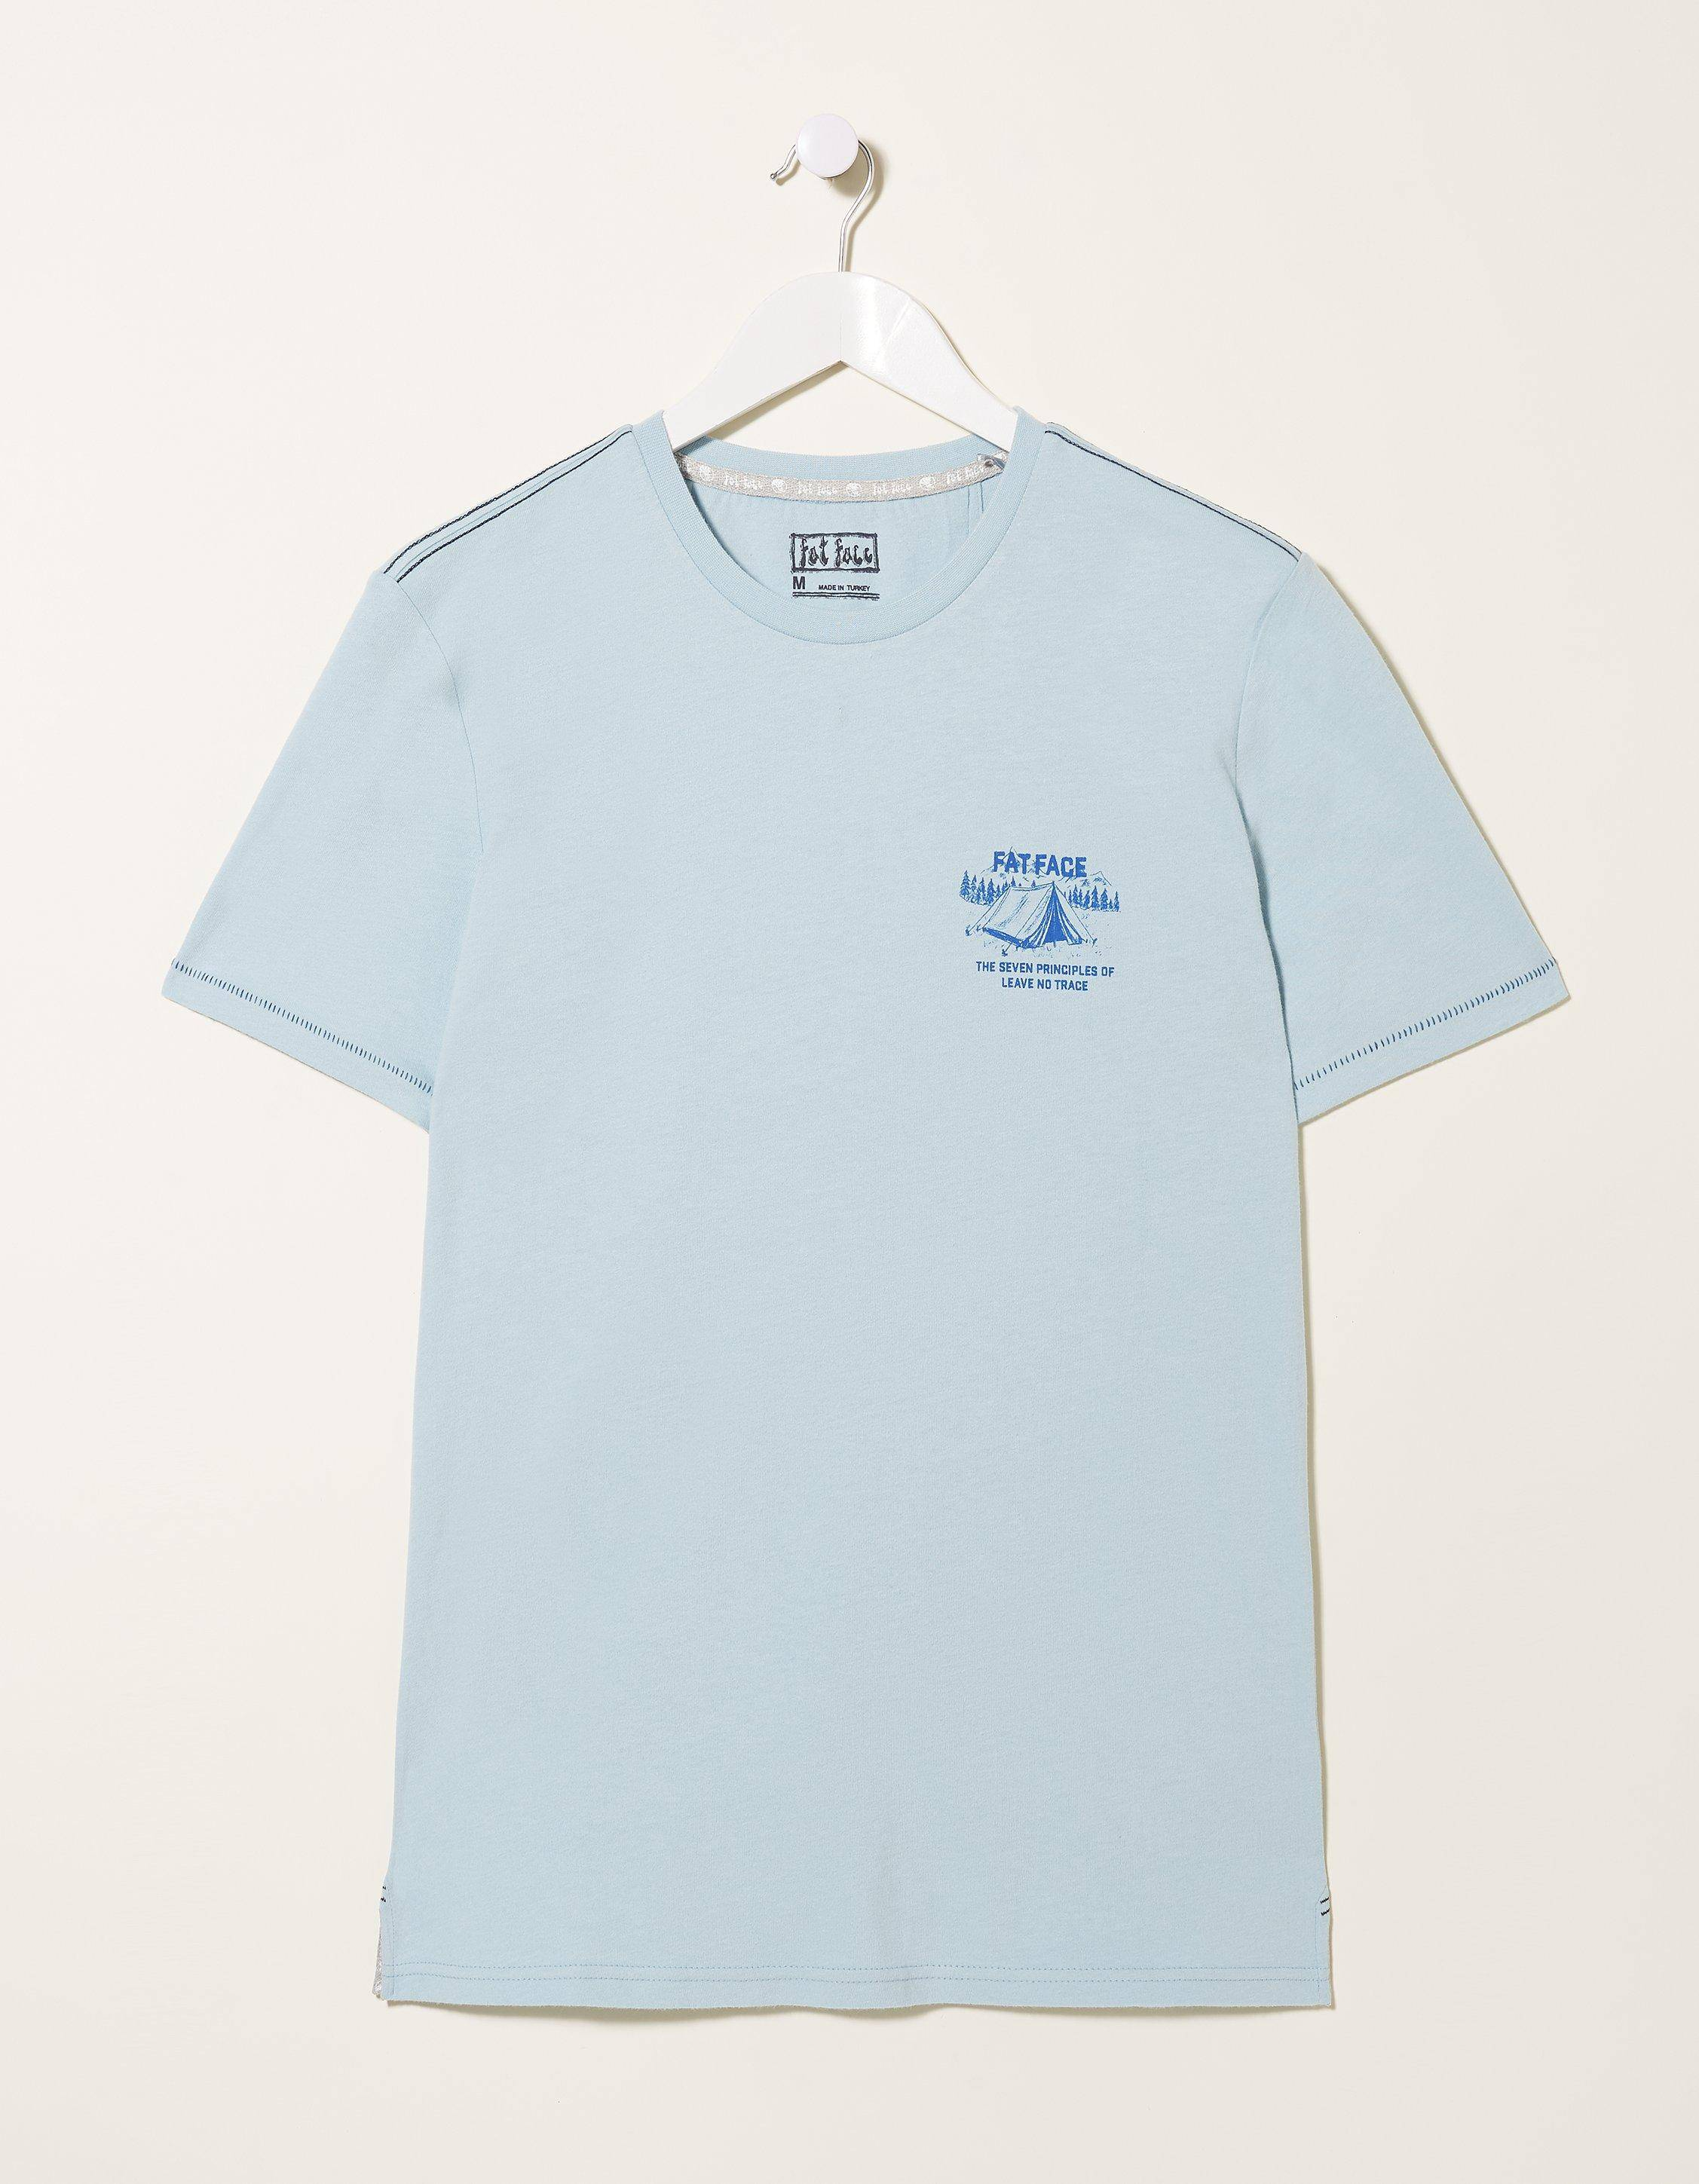 Fat Face Technical Camping T-Shirt  - Size: Large